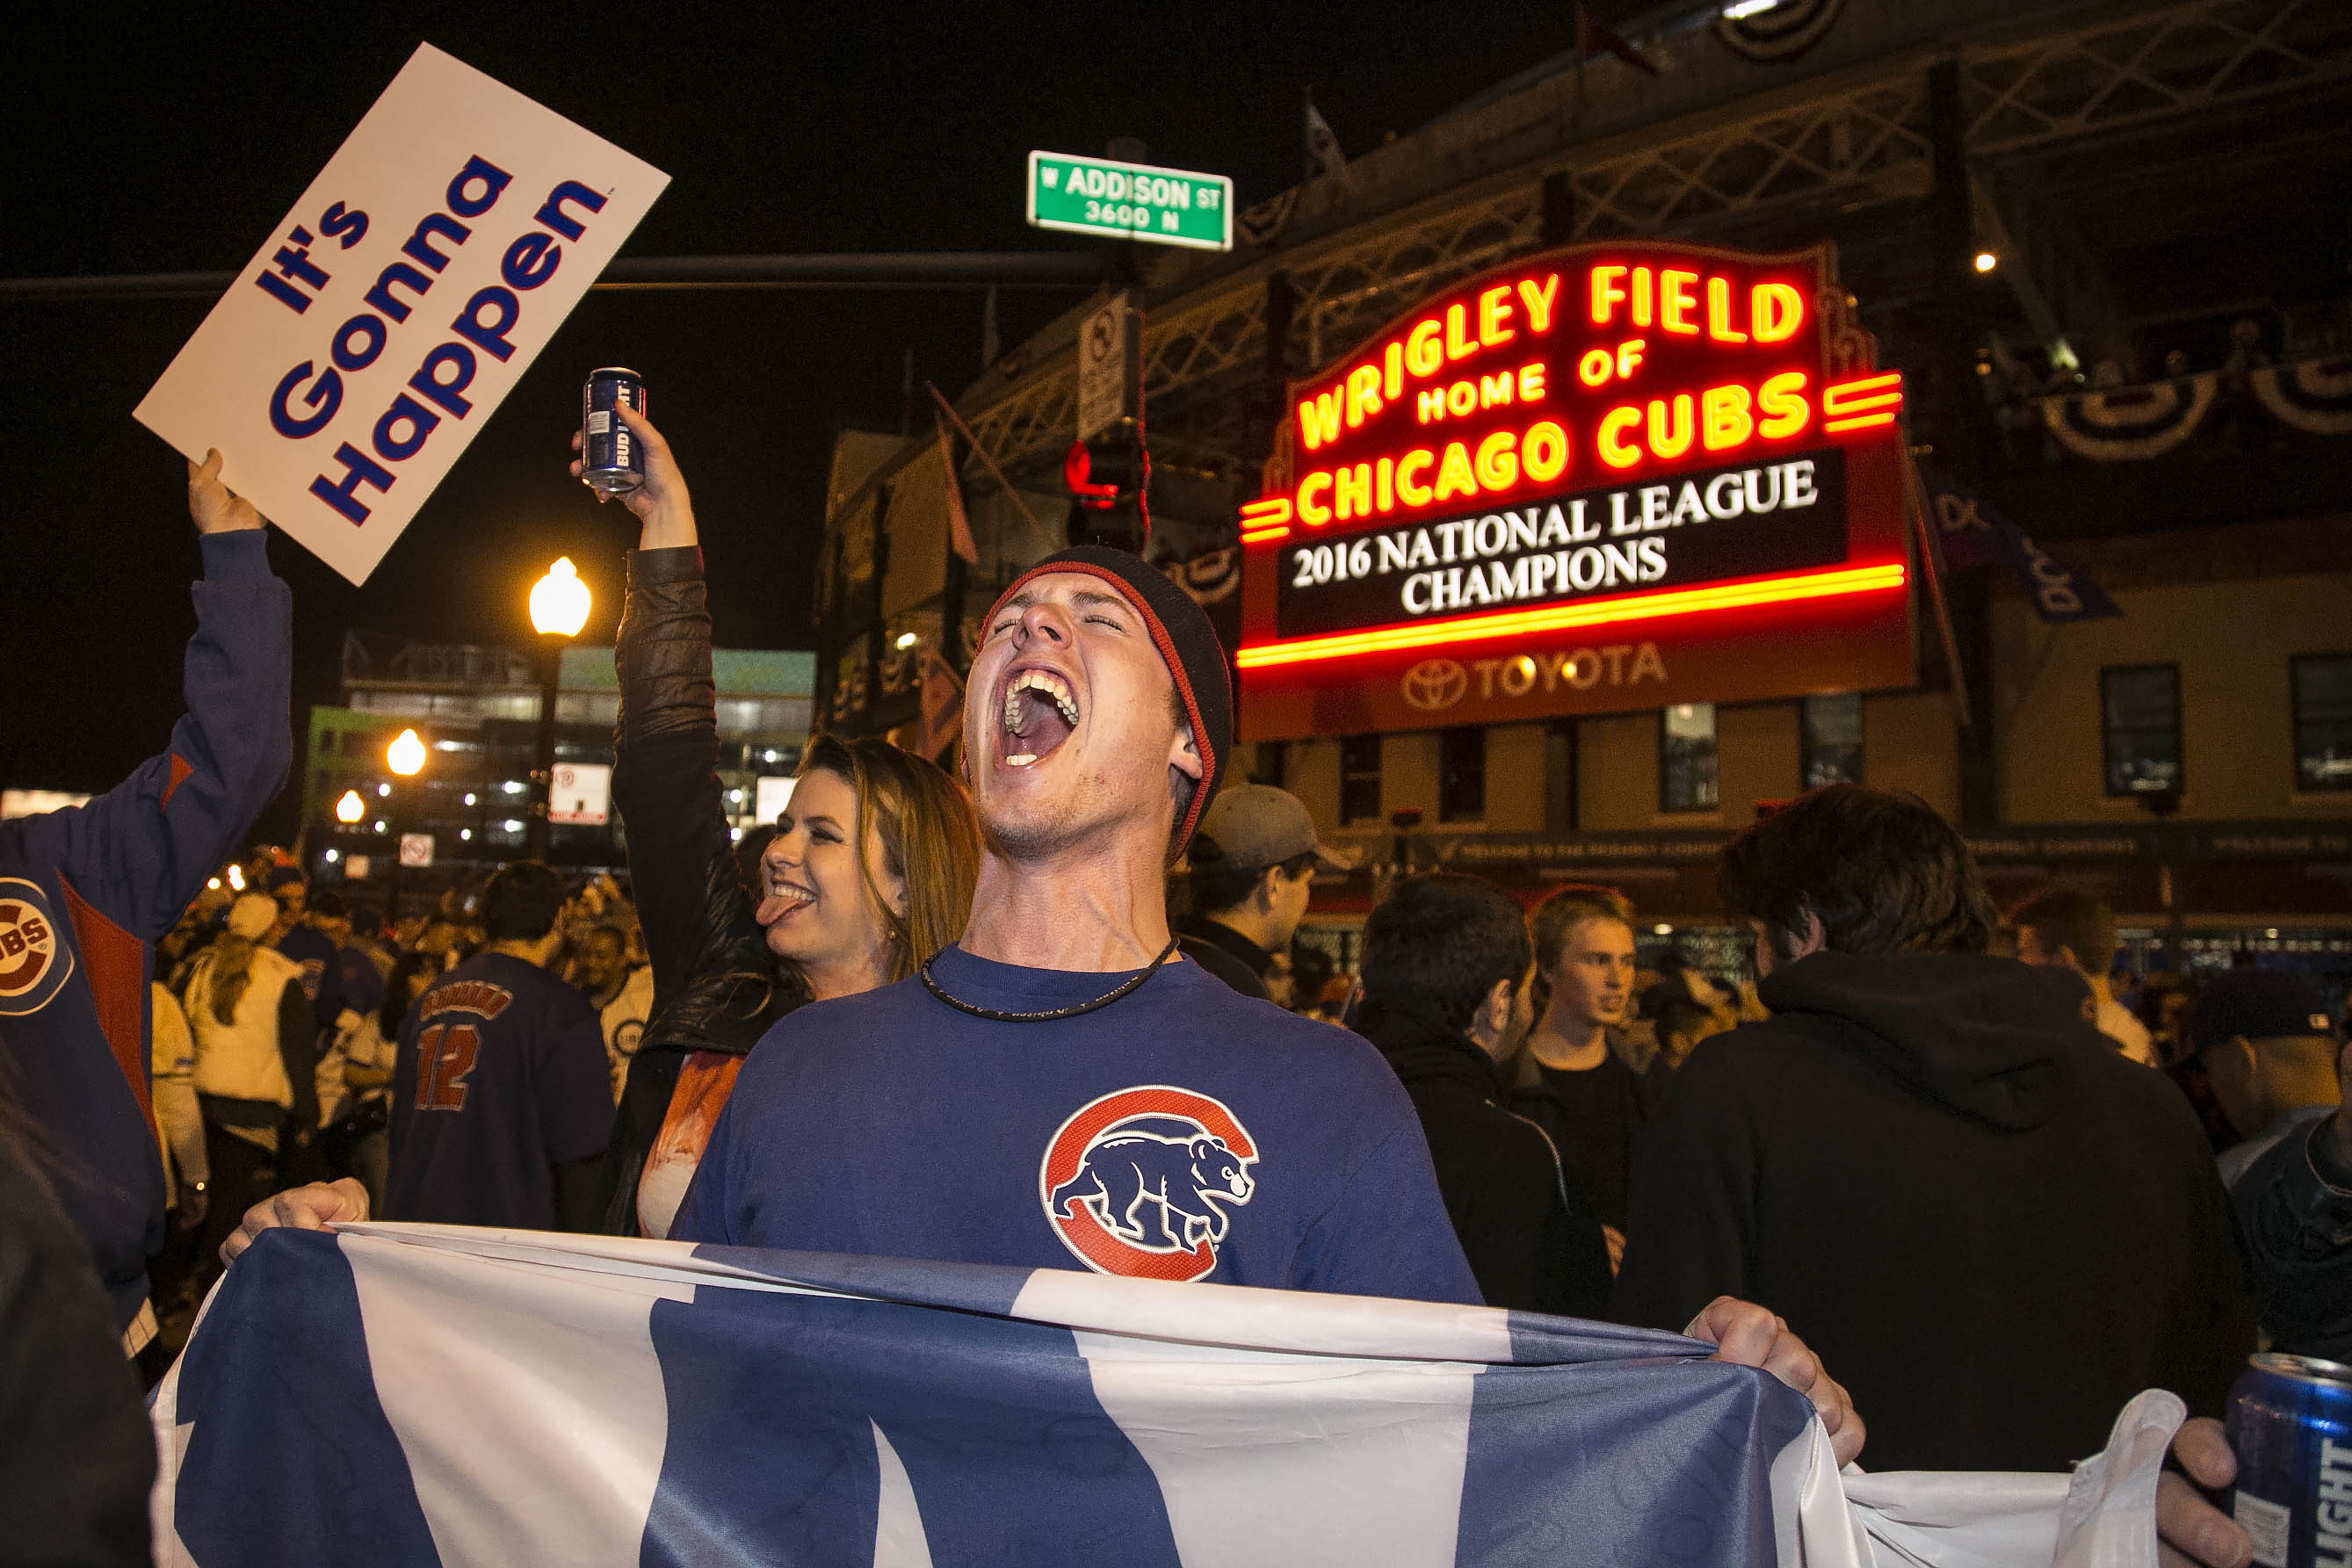 FILE - In this Oct. 22, 2016, file photo, Chicago Cubs fans celebrate outside Wrigley Field after the Cubs defeated the Los Angeles Dodgers 5-0 in Game 6 of baseball's National League Championship Series in Chicago. Fans who are hoping to see the Cubs pla